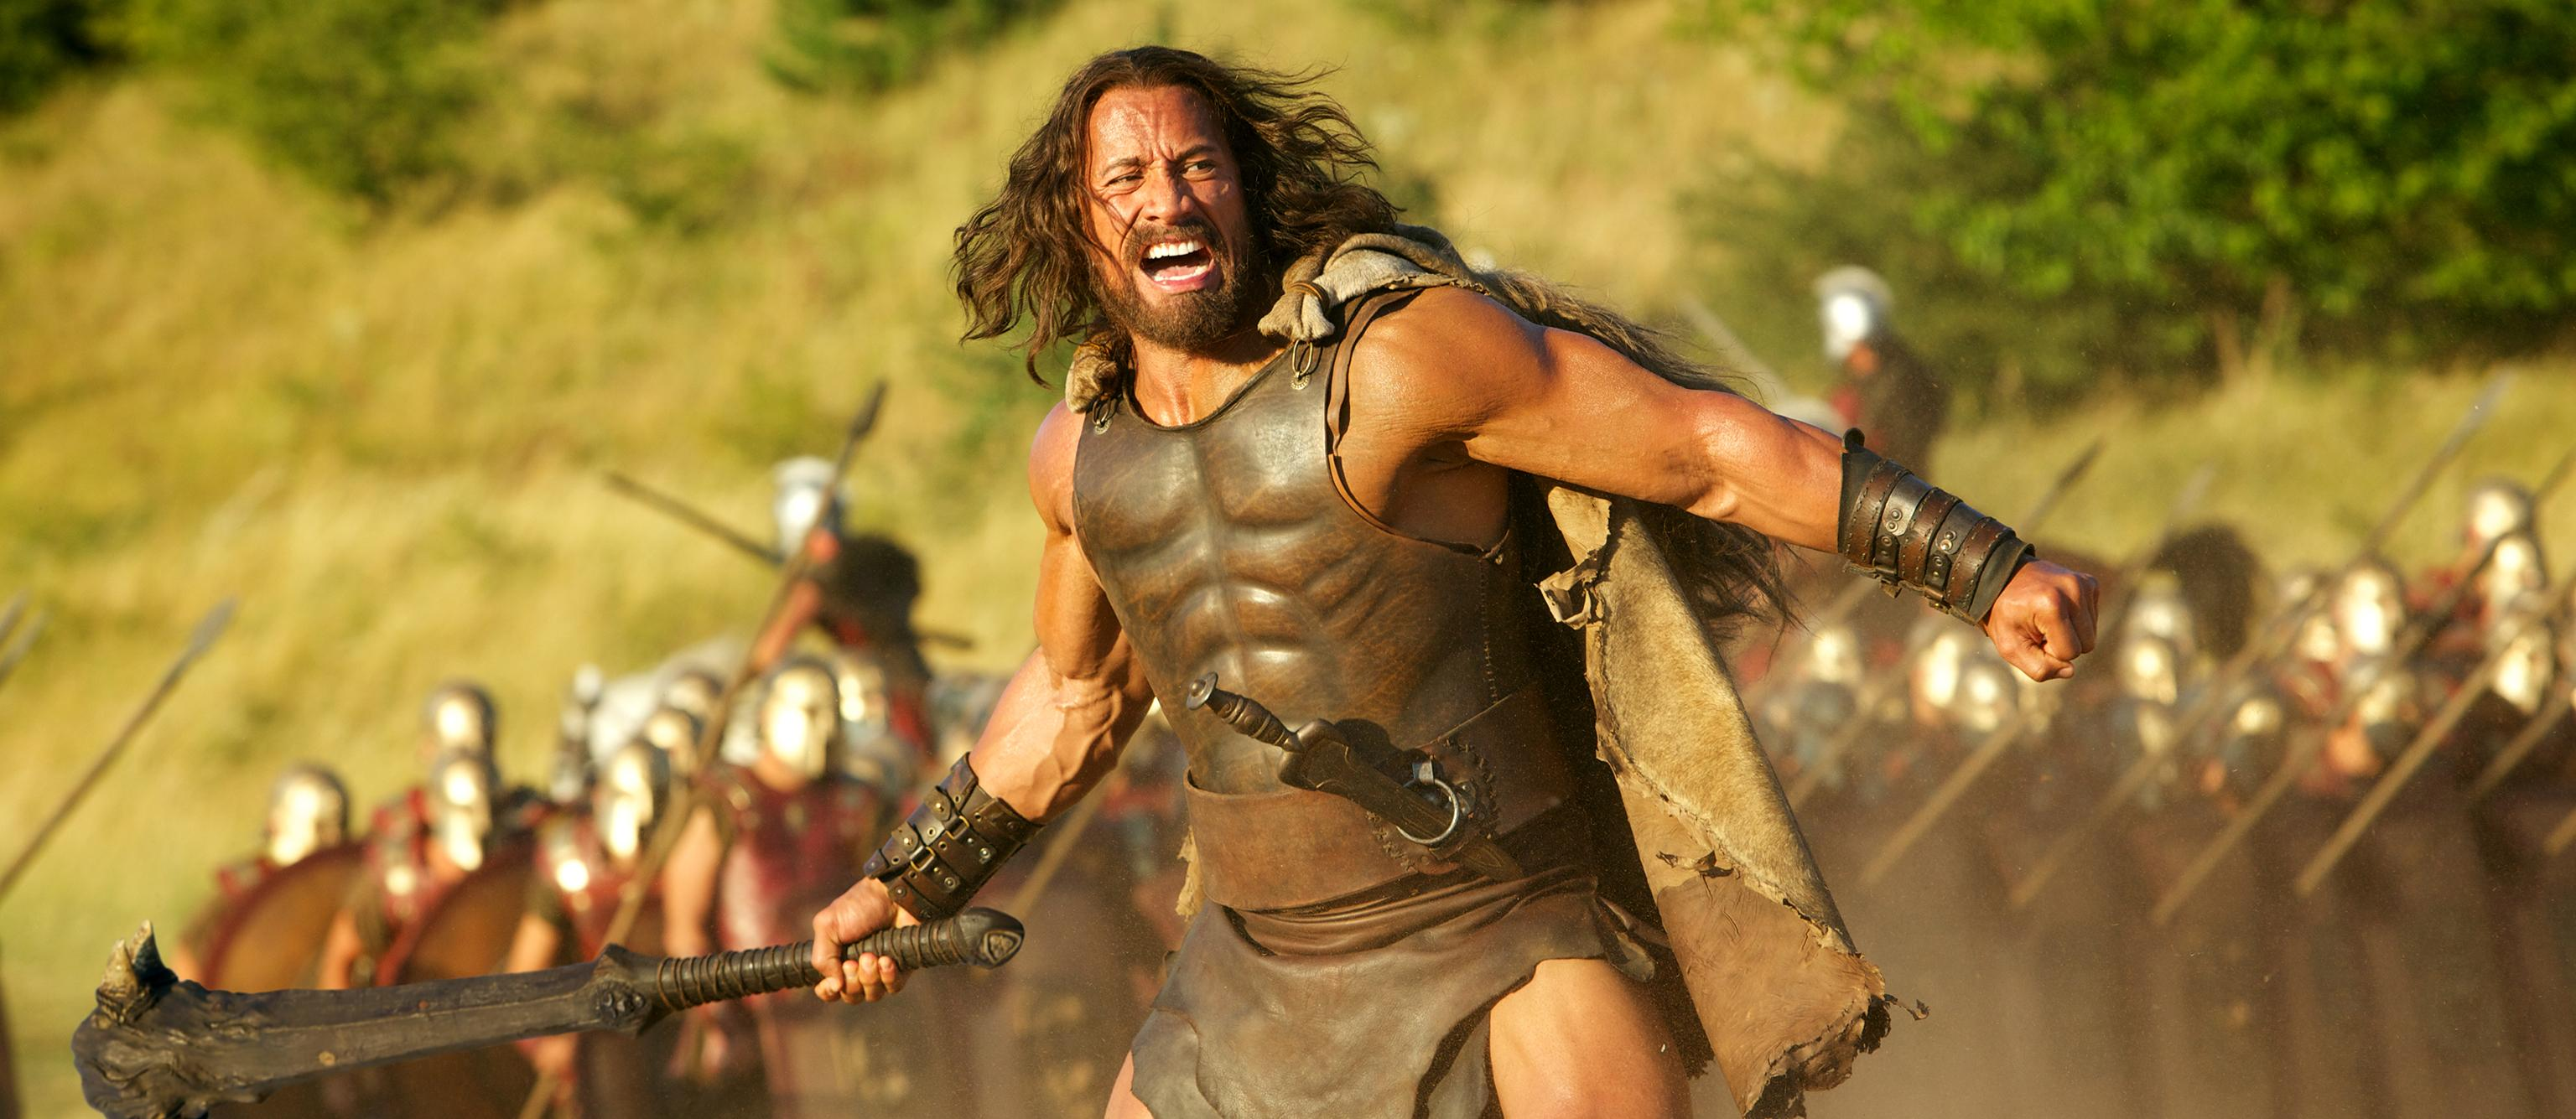 The Rock gets mythological, ScarJo turns scary-smart, Woody's tepid latest, PSH's final role, and more: new movies!